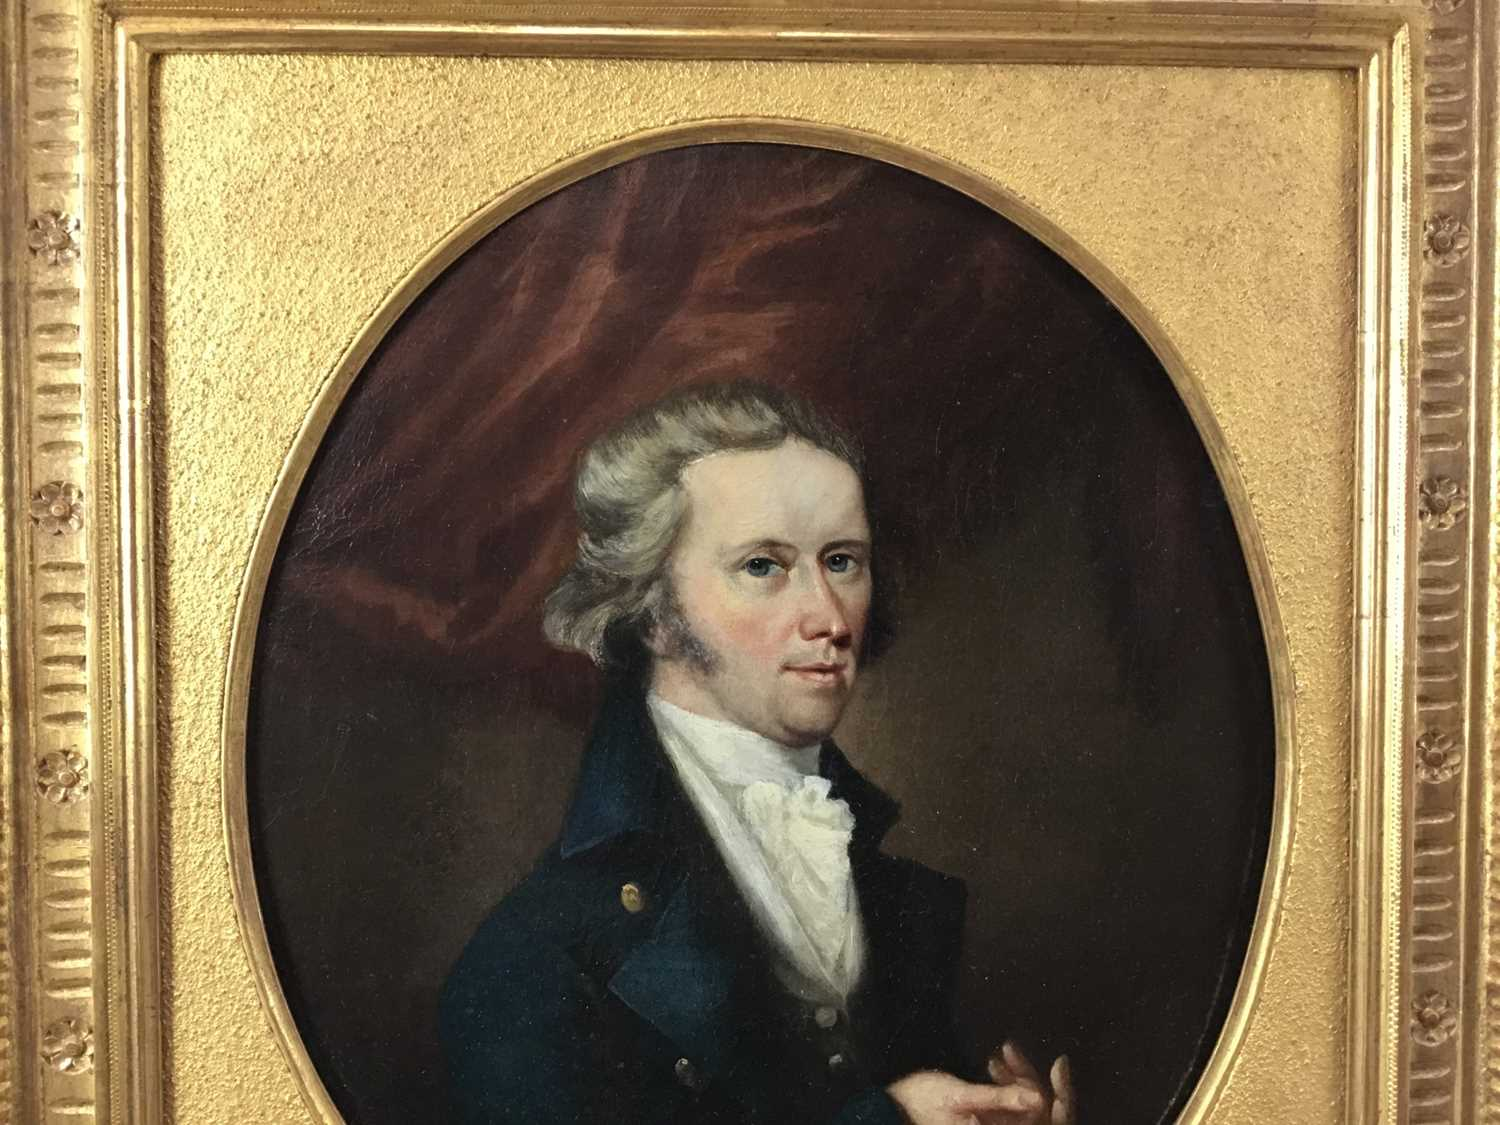 John Greham, late 18th century, oval oil on canvas - portrait of a gentleman, in gilt frame - Image 7 of 11